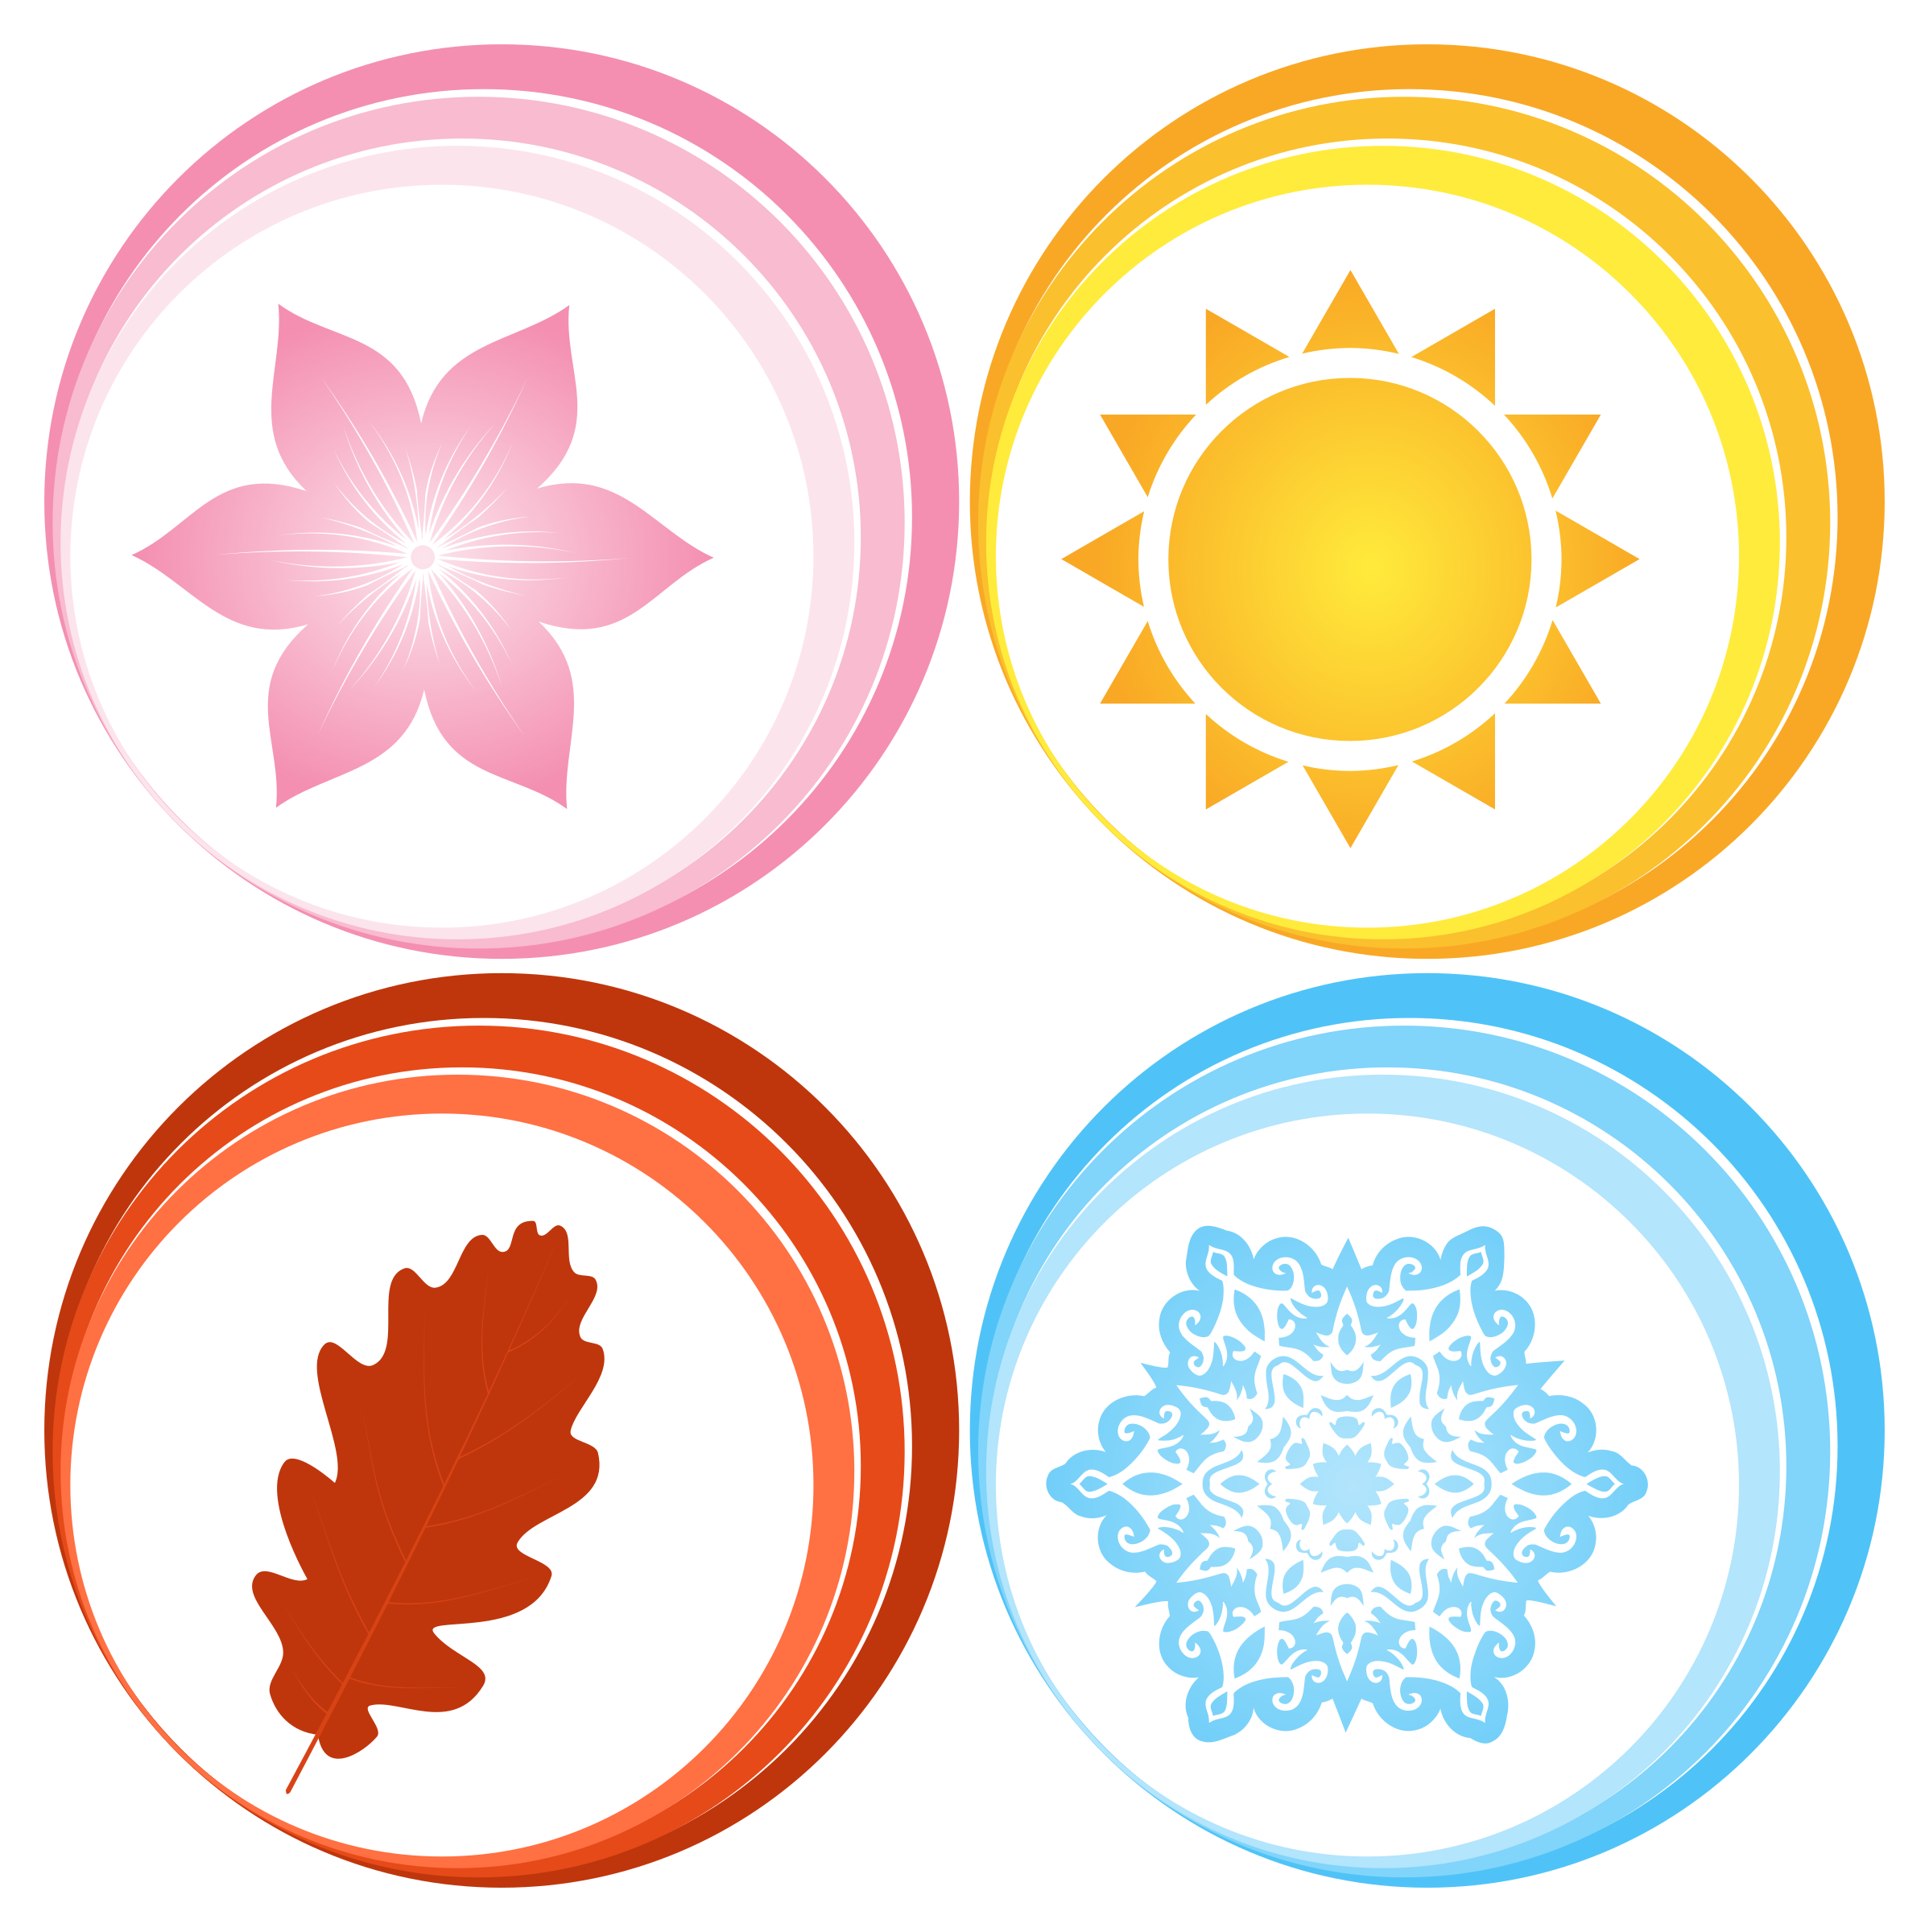 The four seasons clipart vector library library Symbols for Four Seasons Vector Clipart image - Free stock ... vector library library